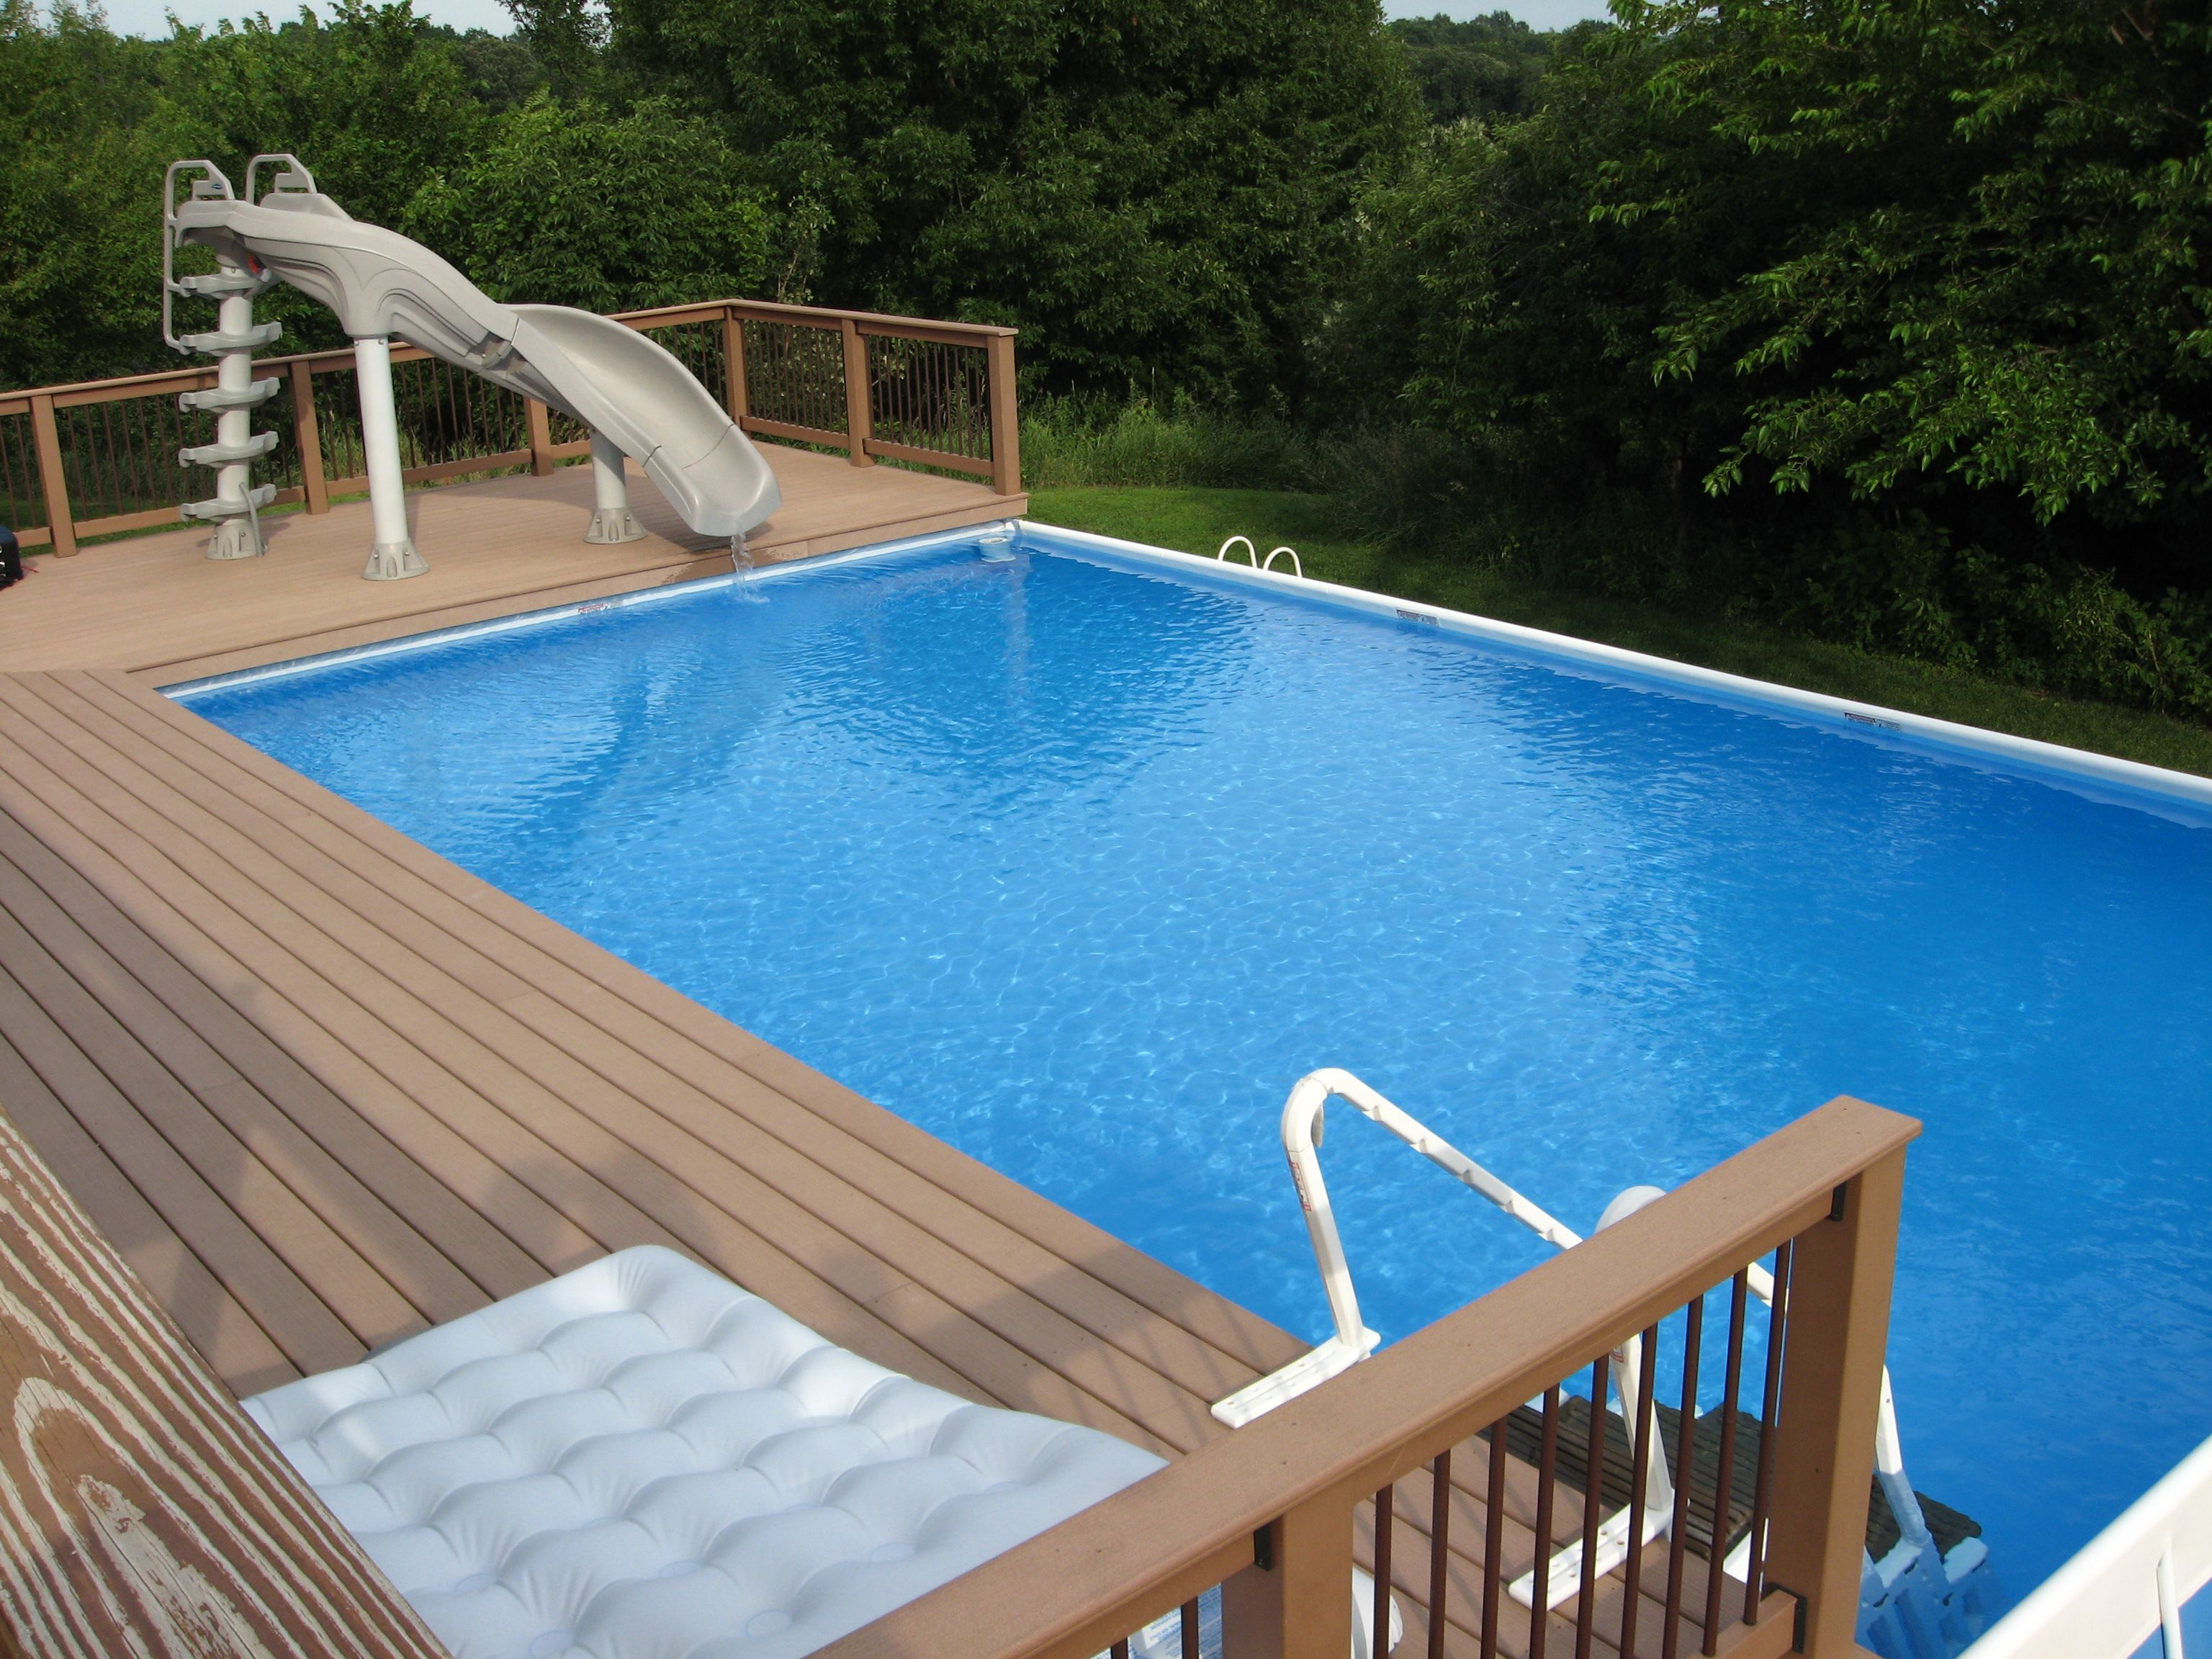 Above Ground Pool Decks Idea For Your Backyard Decor Beautiful Above Ground Pool Custom Decks